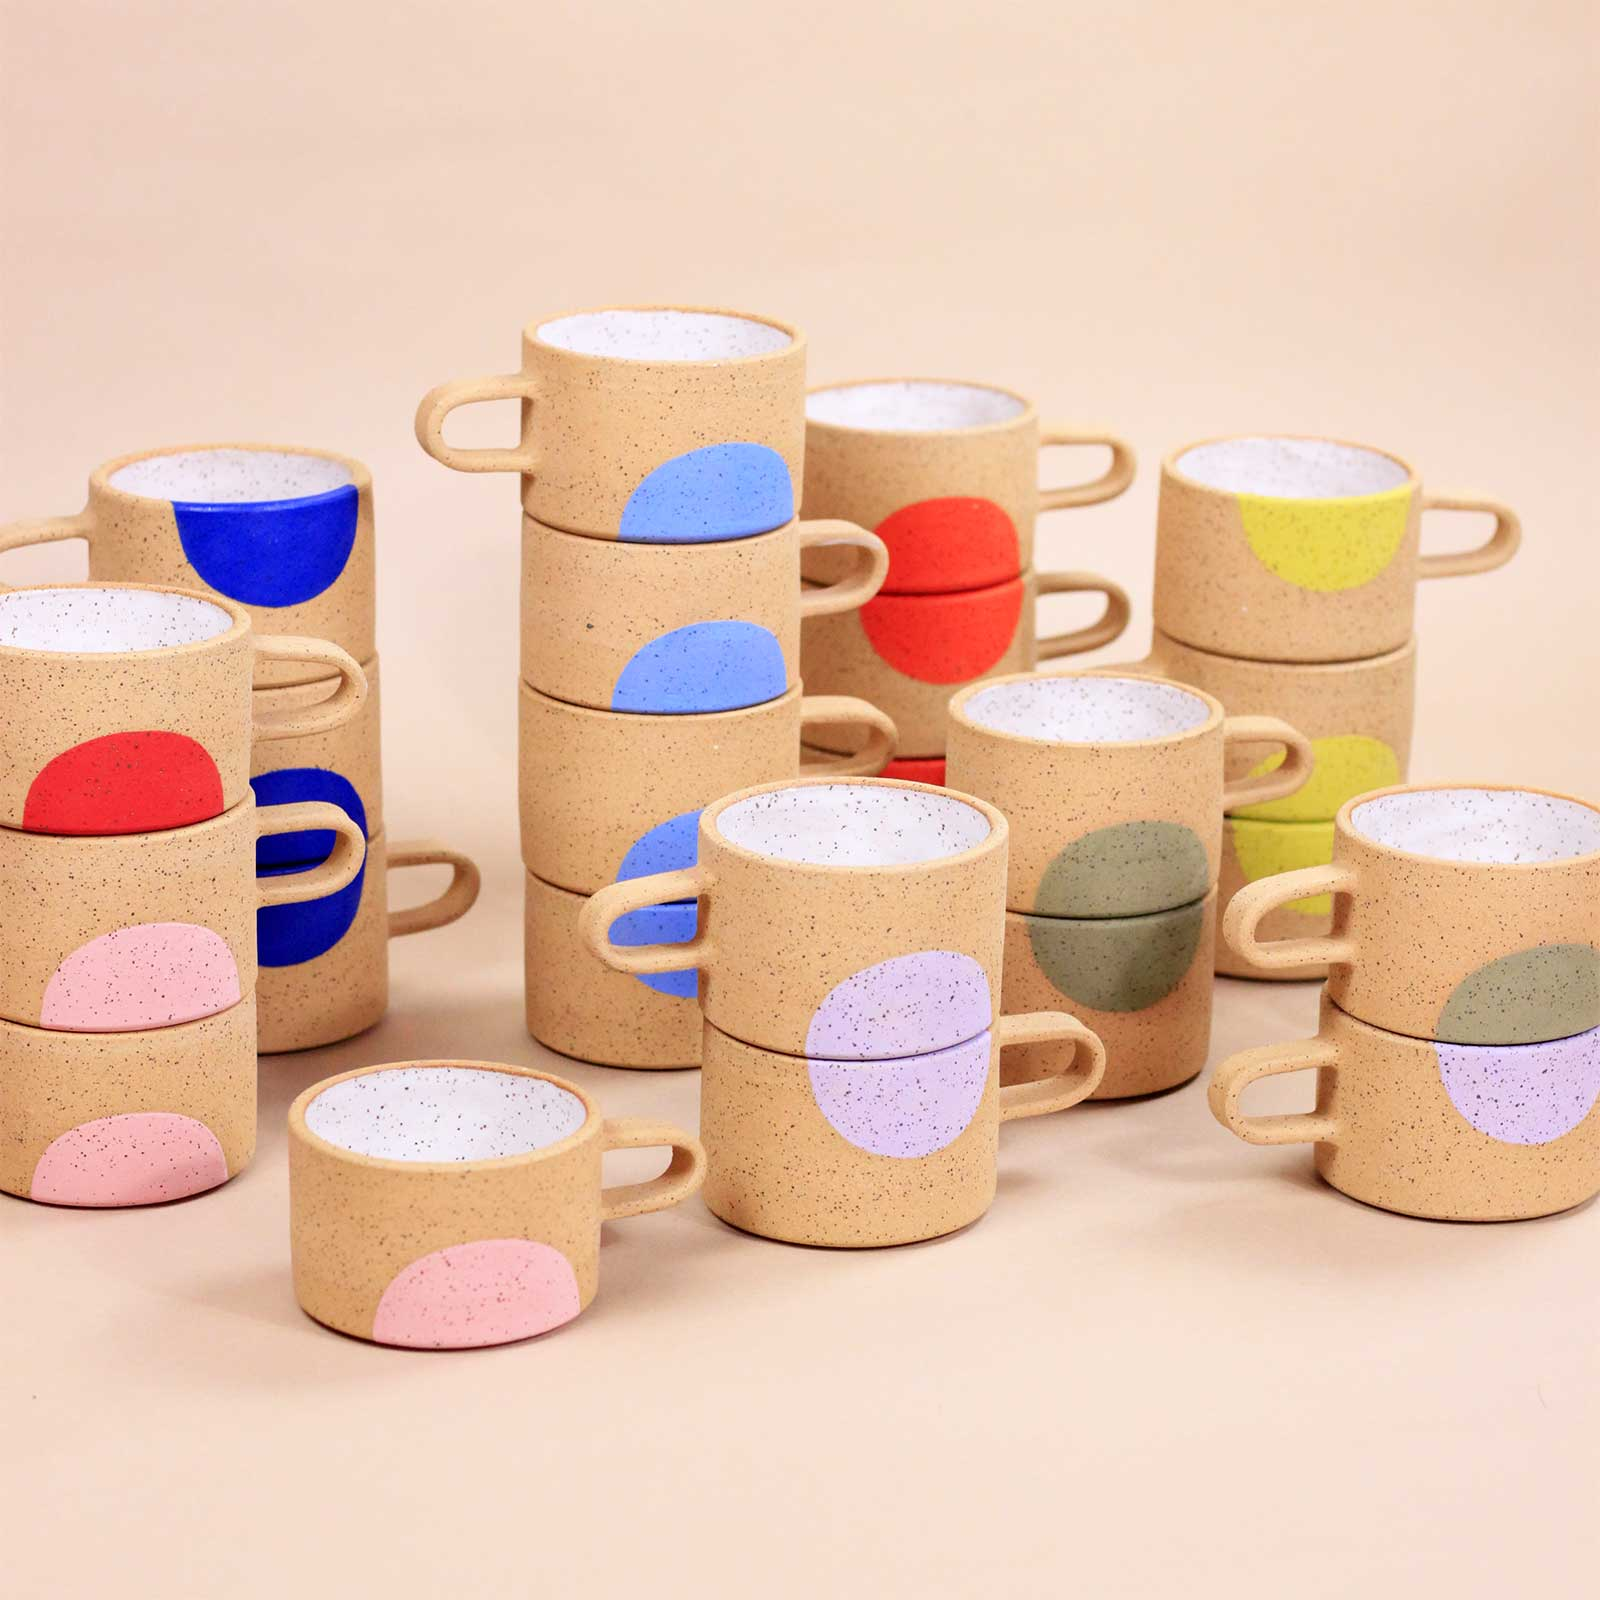 DOT MUG - 8 COLORS